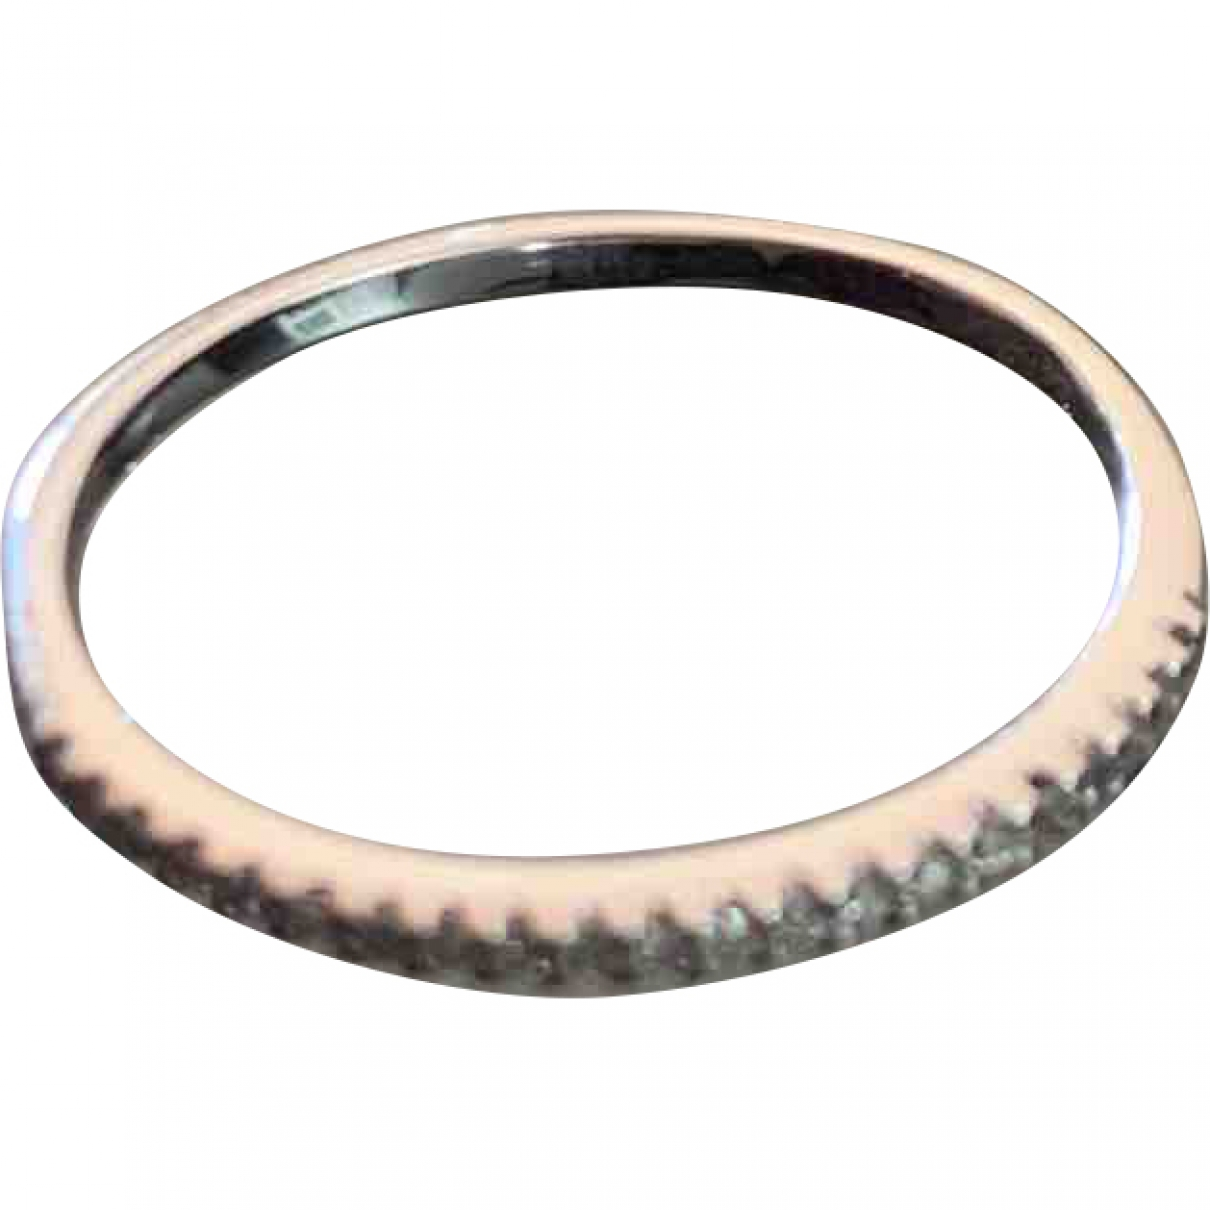 Le Diamantaire \N Silver White gold ring for Women \N